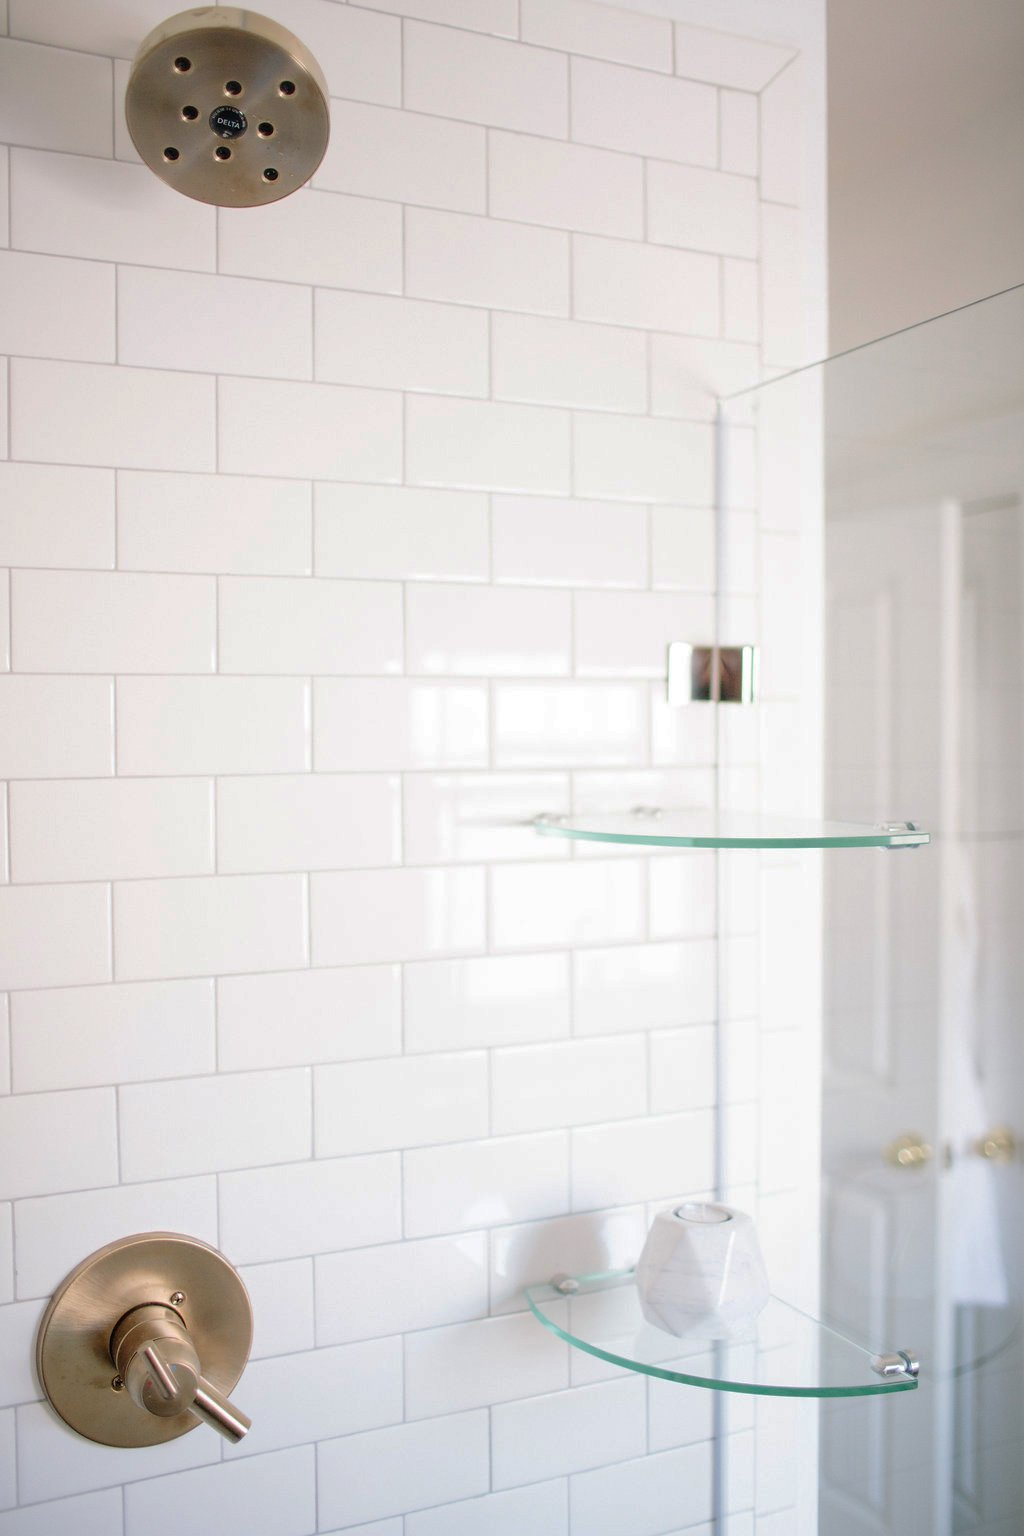 Our Master Bathroom Renovation Fixtures and Finishes